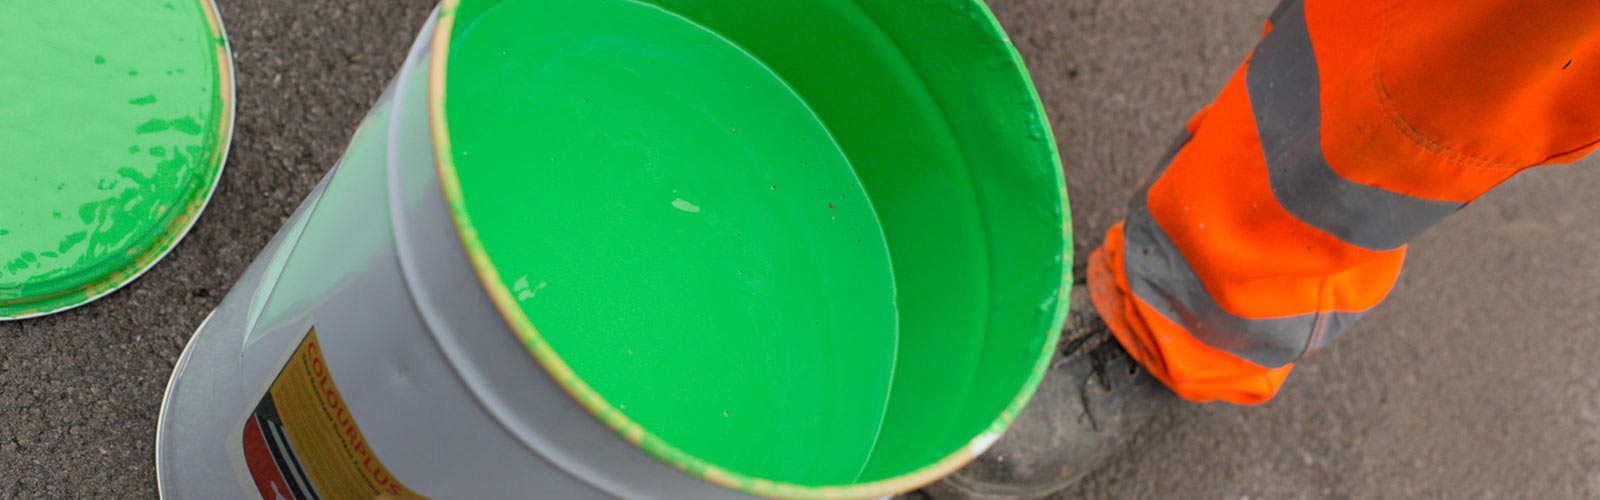 Green paint for road marking